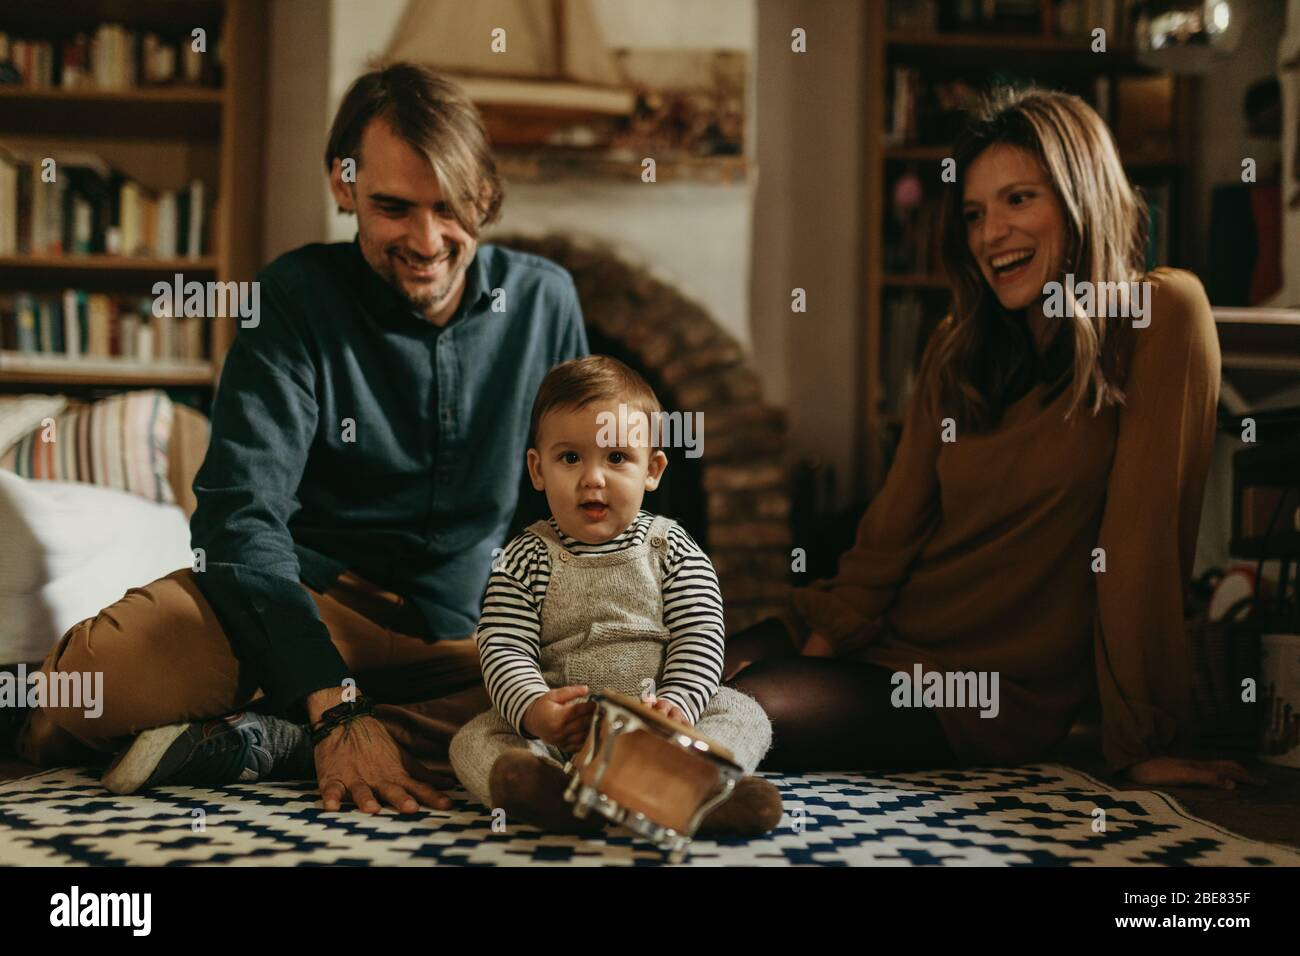 Young happy couple staying at home with their baby son sitting on the living room floor. Stock Photo